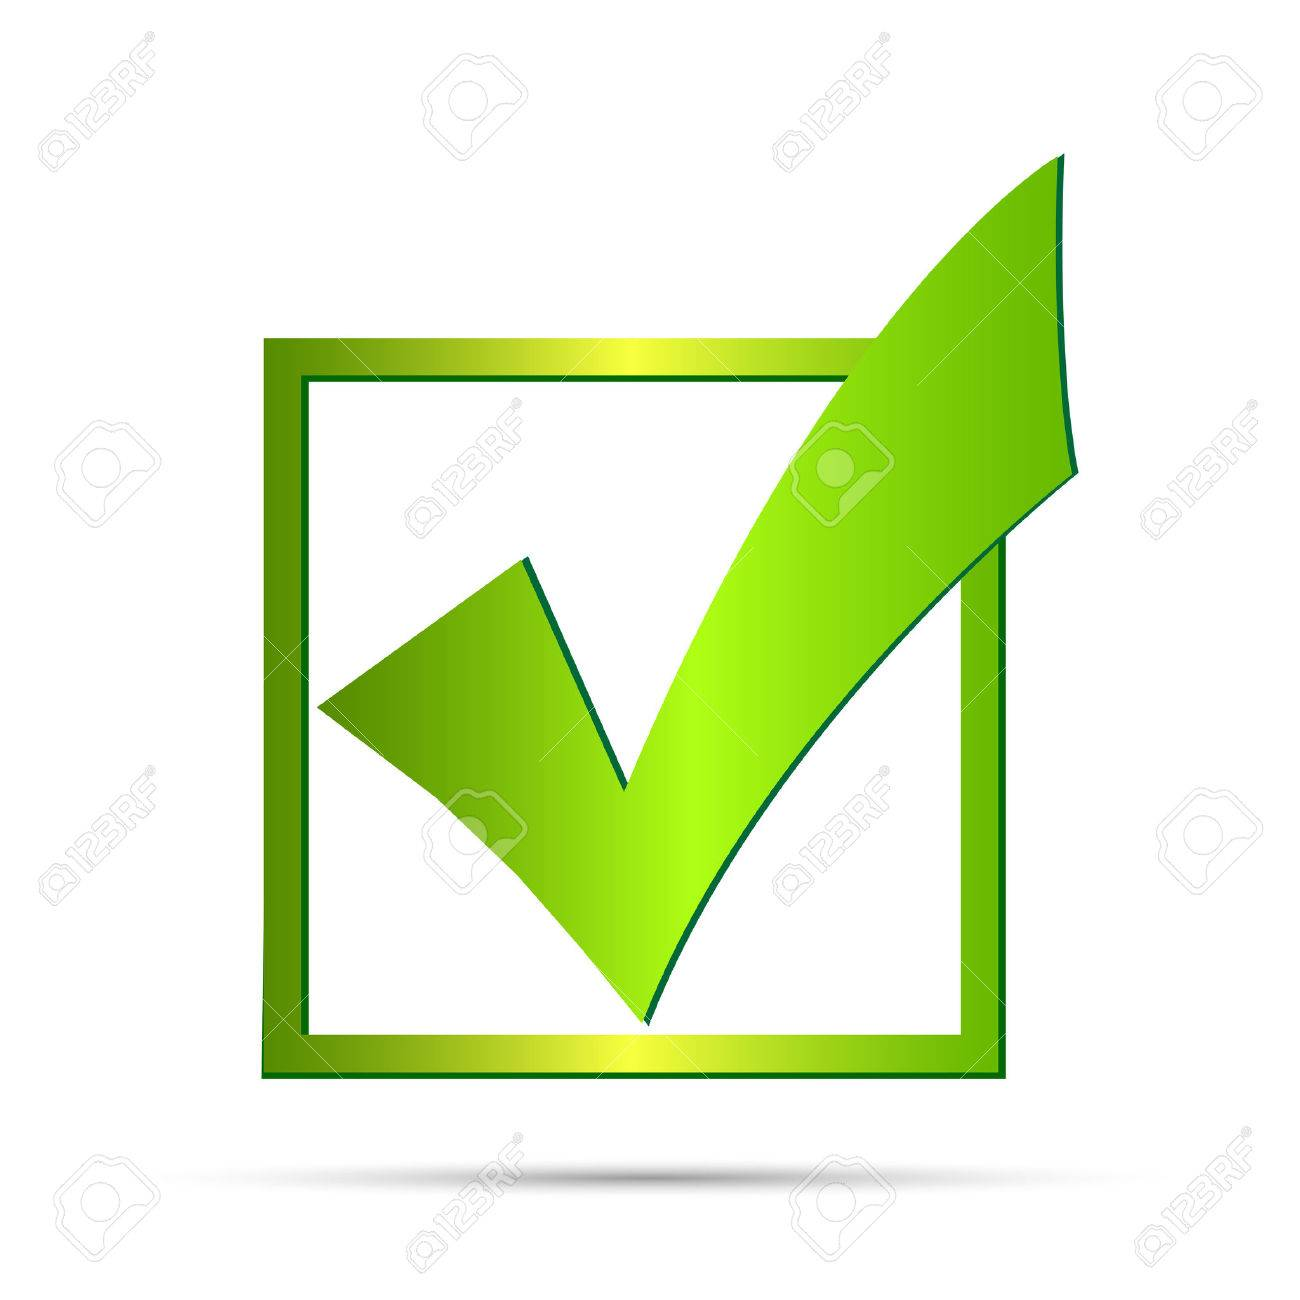 Illustration of a green check mark isolated on a white background. - 27195098